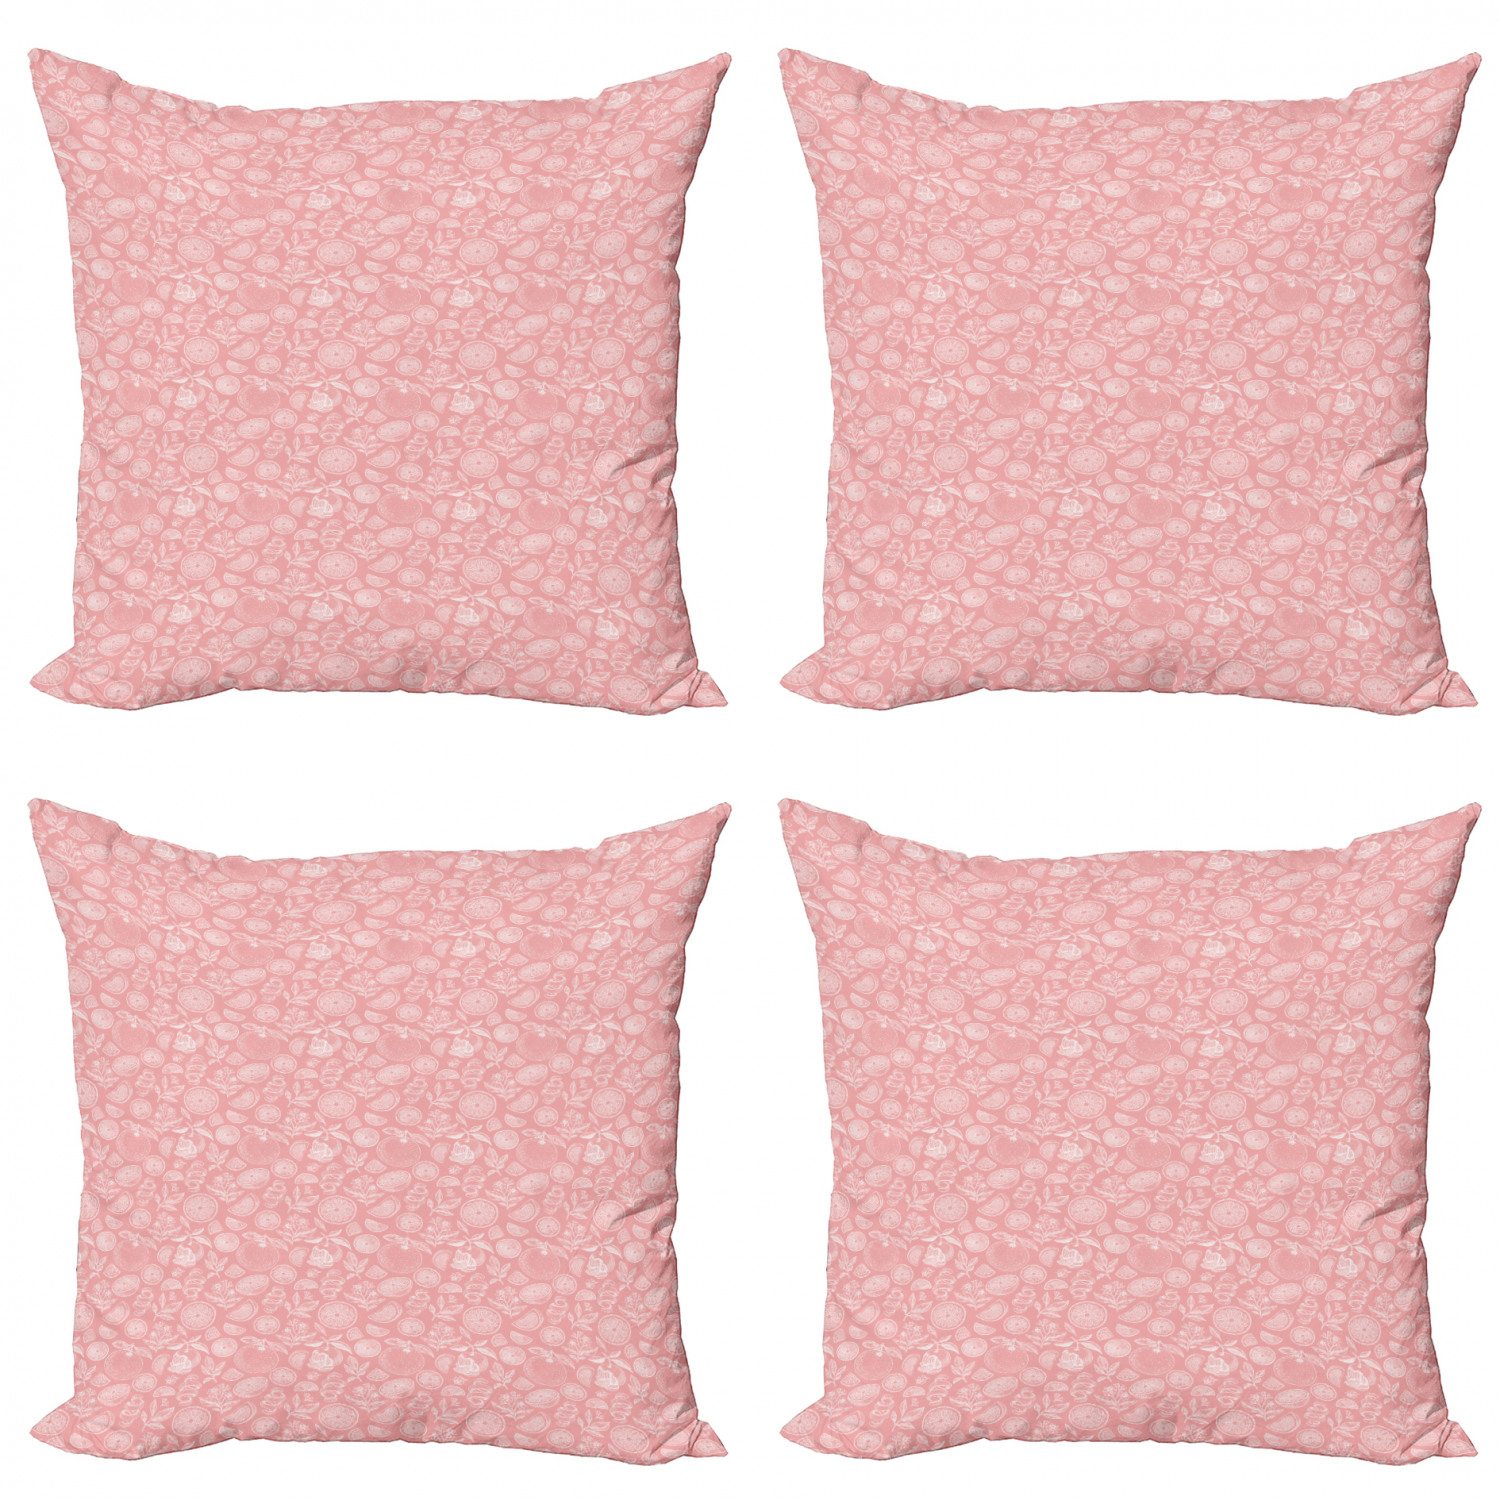 Tropical Throw Pillow Cushion Case Pack Of 4, Monochrome